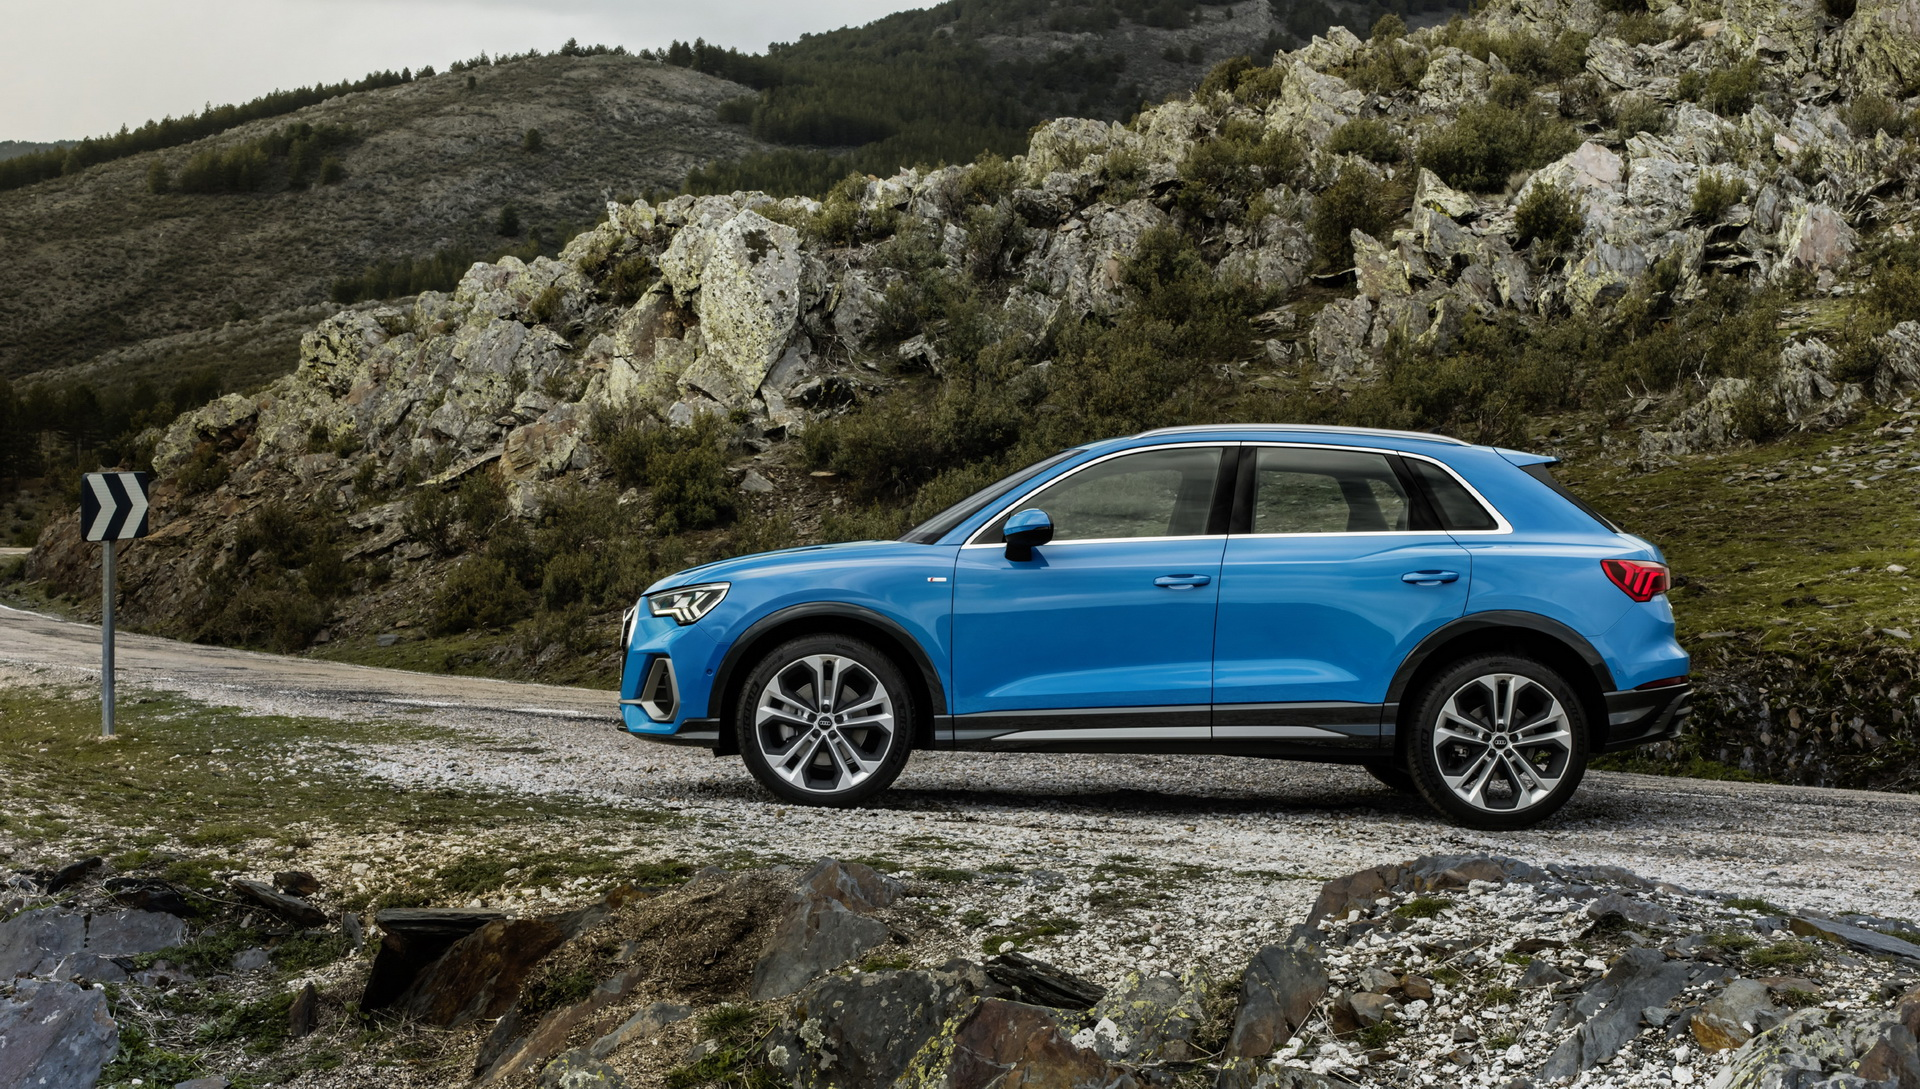 2019 audi q3 revealed new small luxury suv grows and embraces its sporty side carscoops. Black Bedroom Furniture Sets. Home Design Ideas